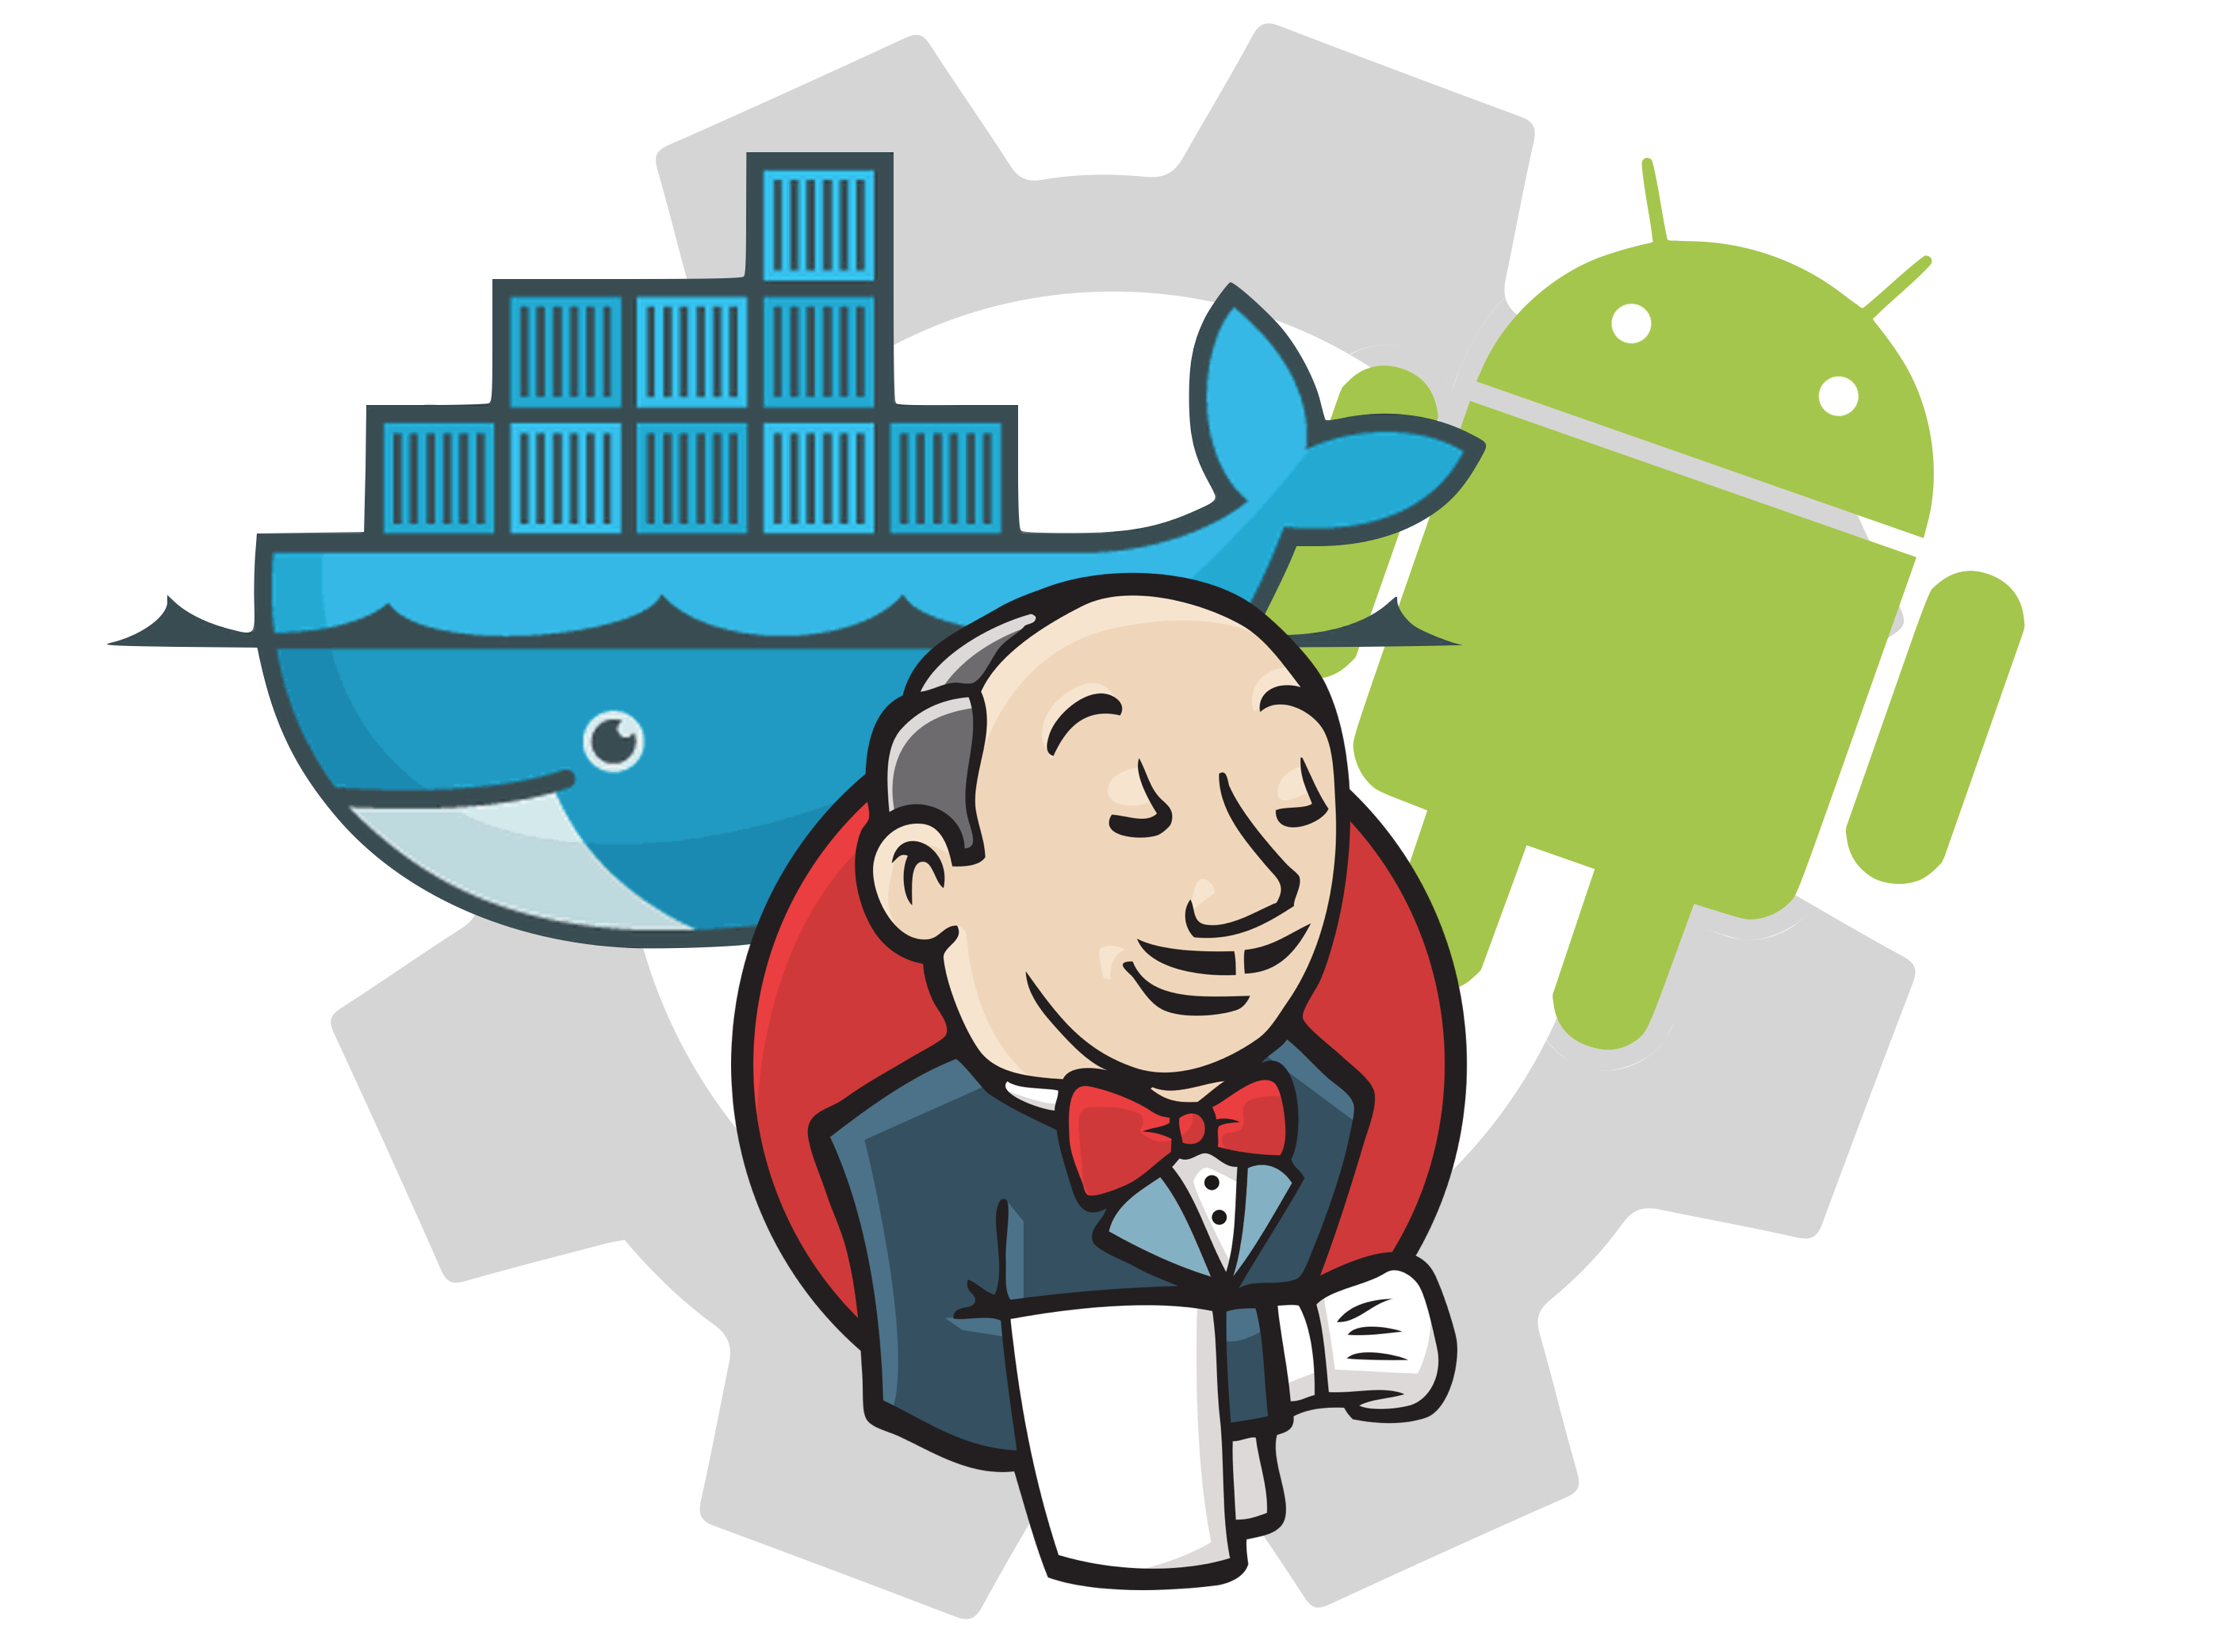 How to setup a CI/CD pipeline for Android using Jenkins and Docker - Part 2